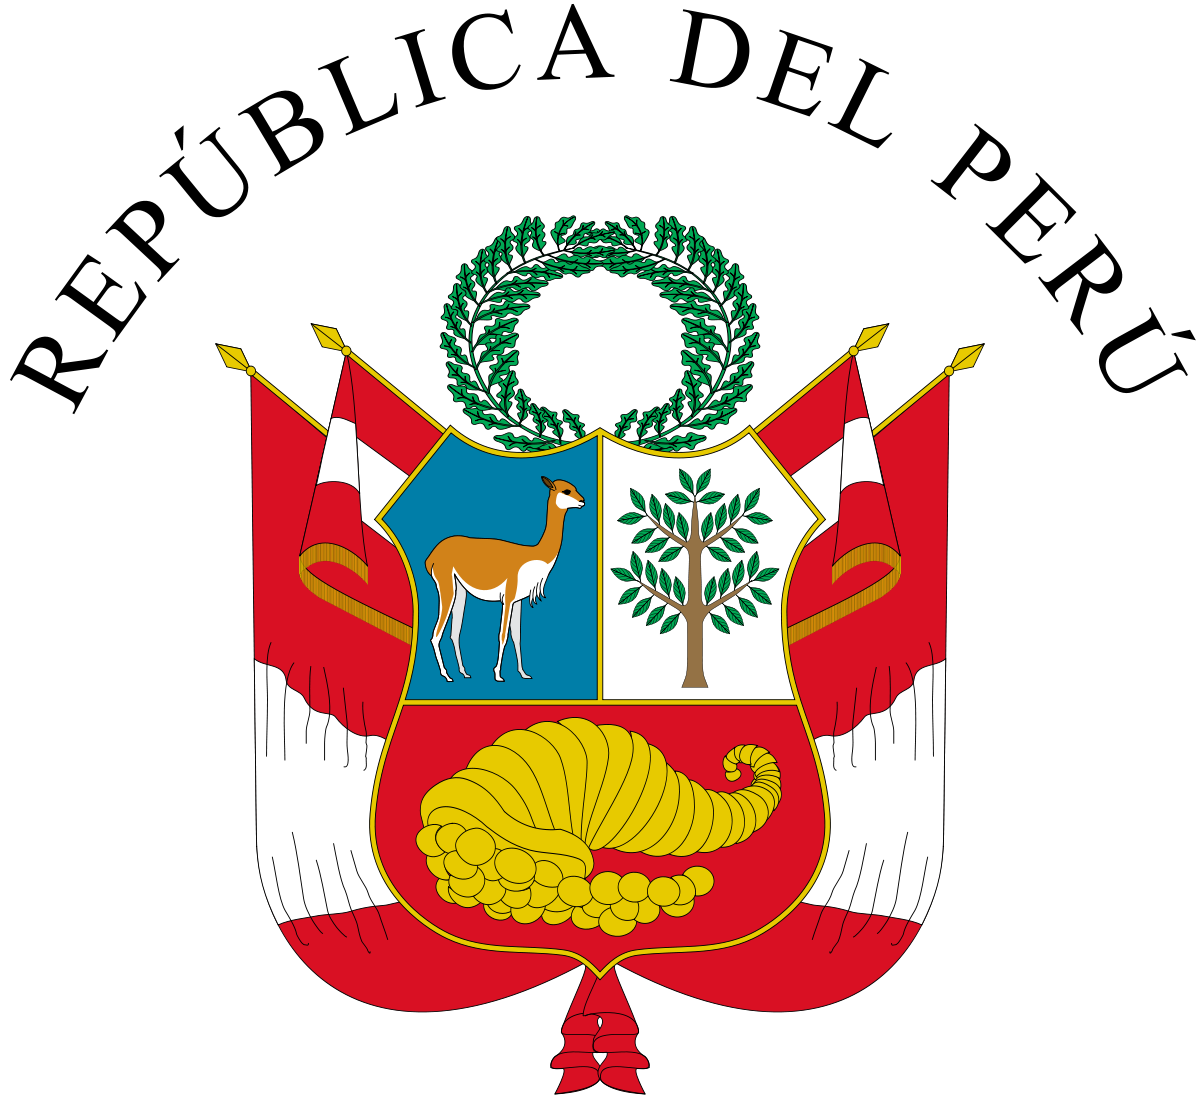 Jury clipart constitutionalism. Constitution of peru wikipedia